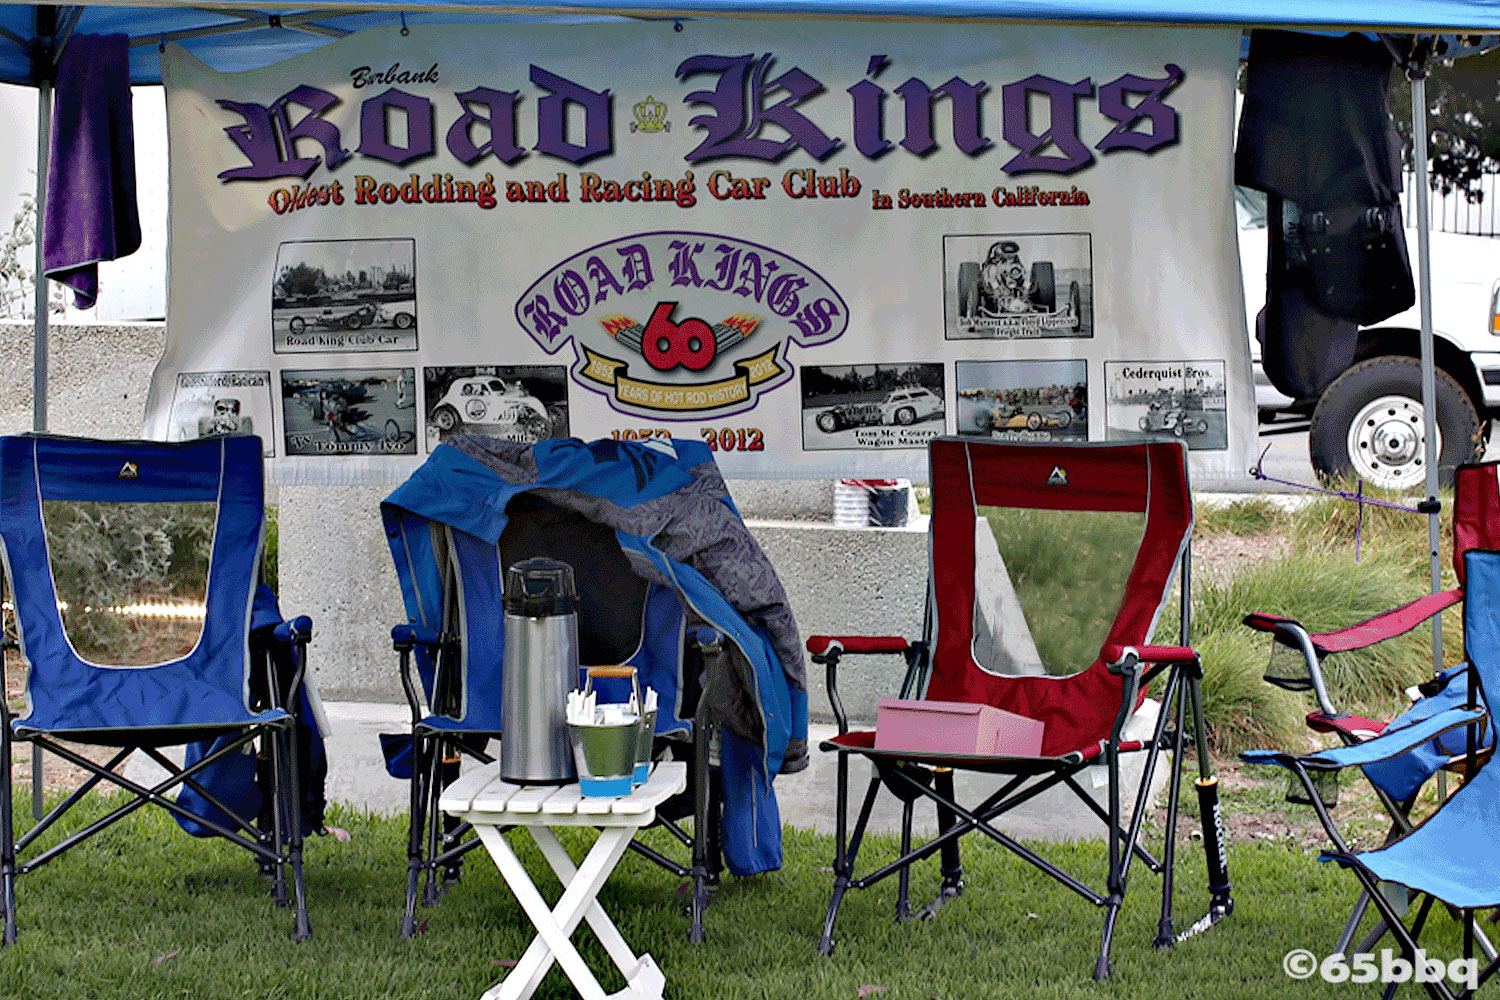 Road Kings at Johnny Carson Park 65bbq